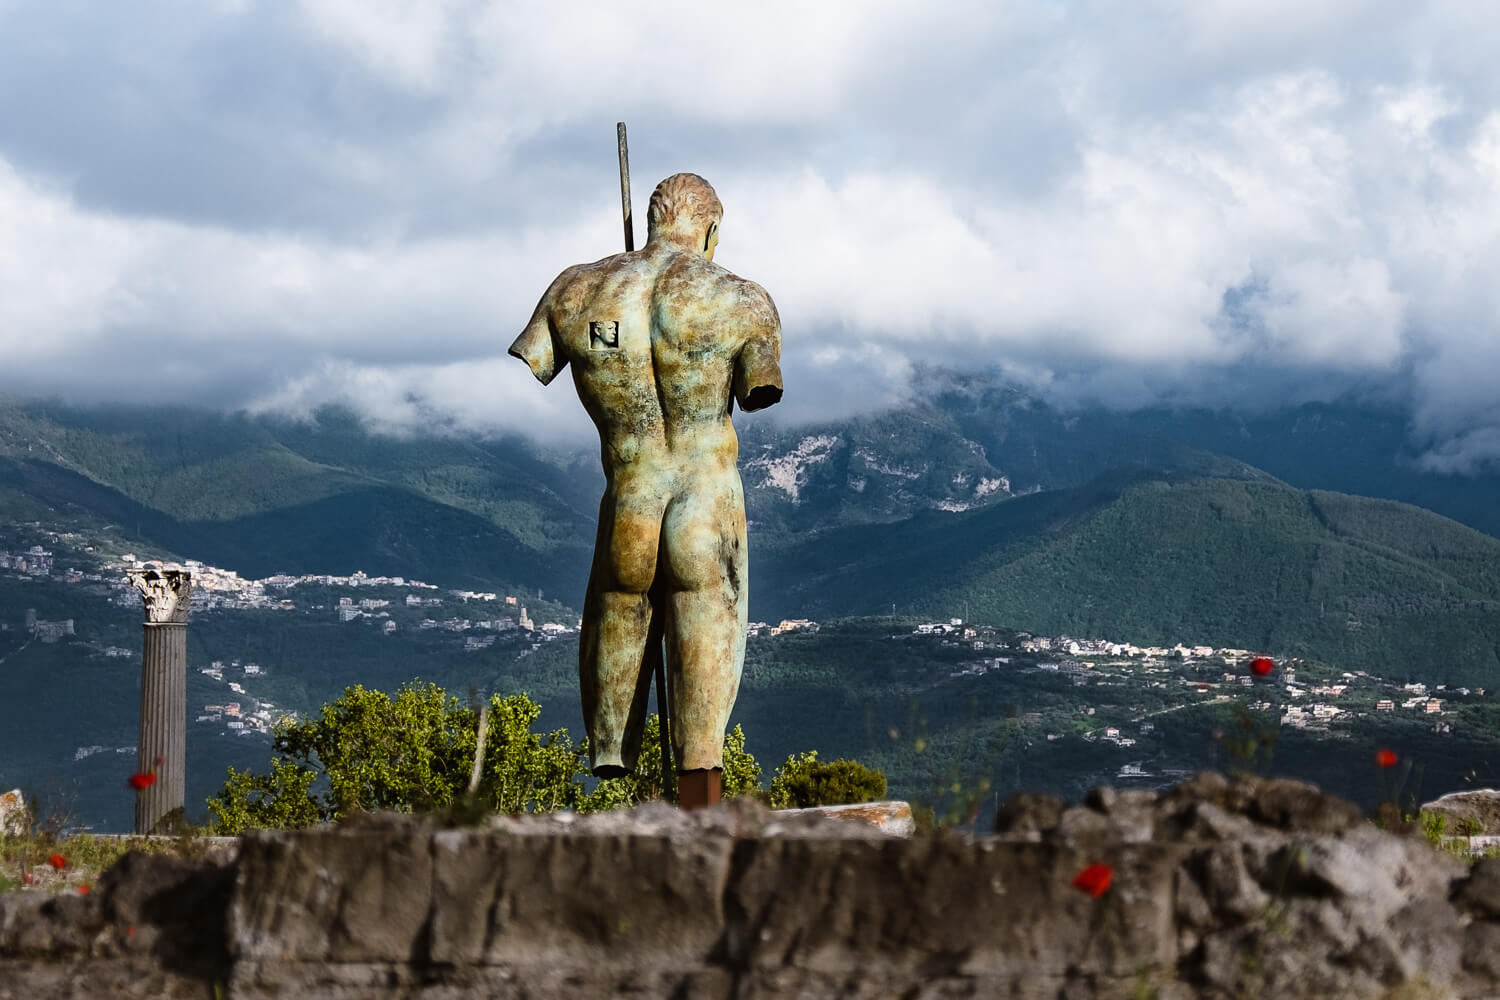 """A statue created by Igor Mitoraj in Pompeii. Travel photography and guide by © Natasha Lequepeys for """"And Then I Met Yoko"""". #pompeii #italy #fujifilm #travelphotography"""